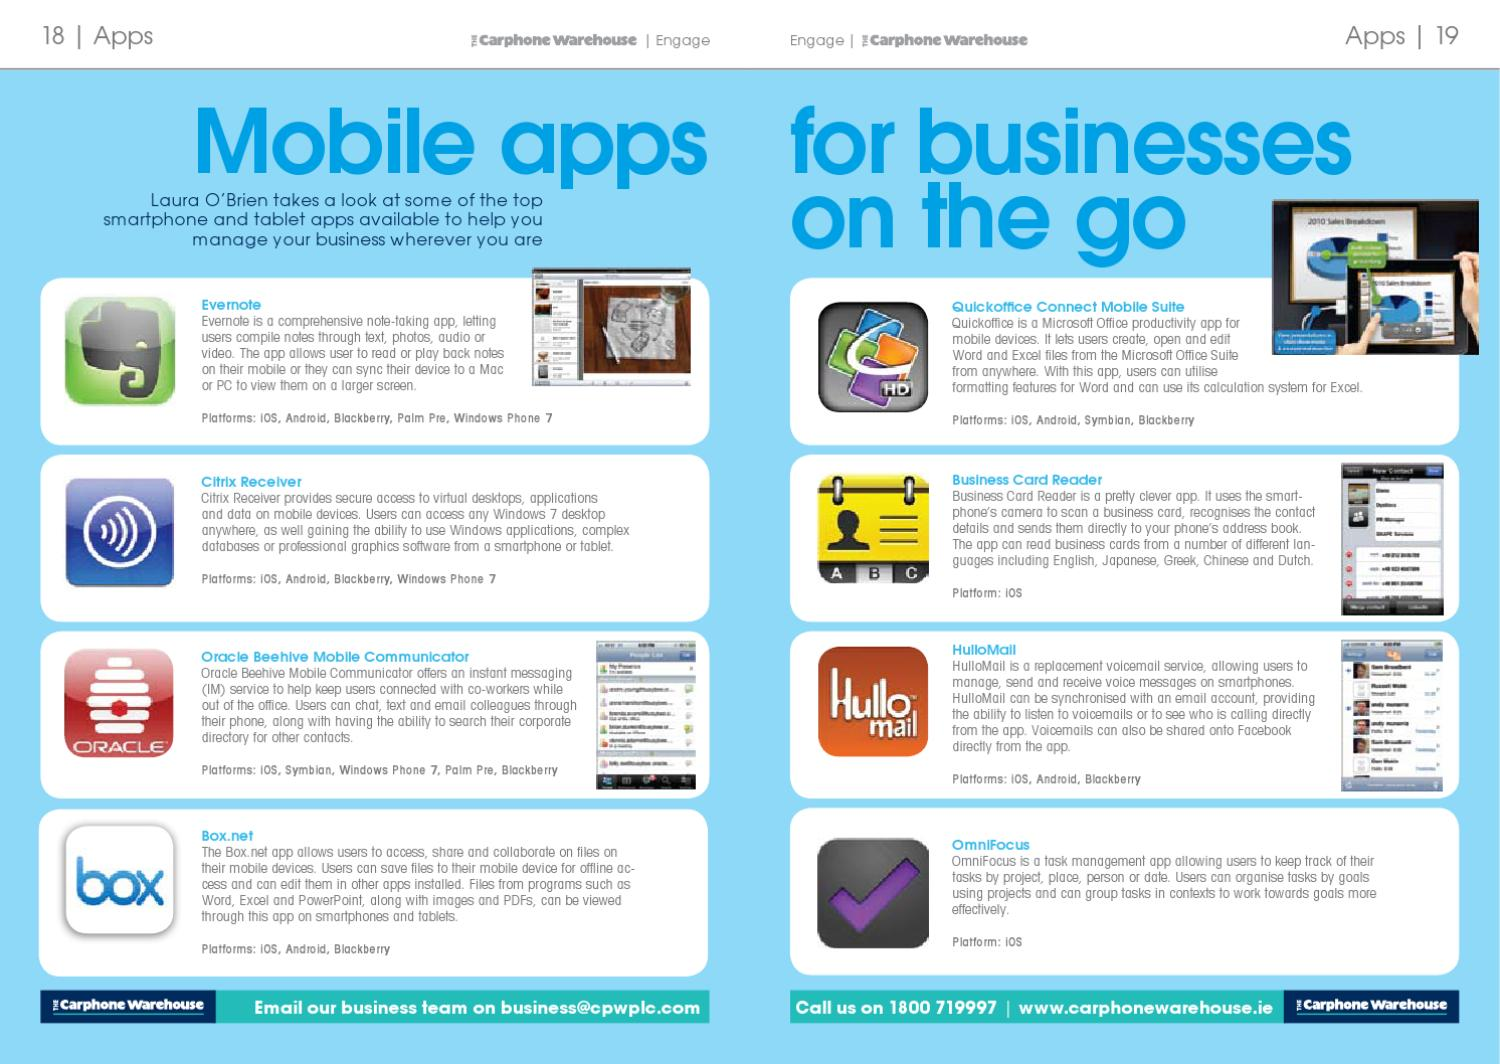 The carphone warehouse engage business guide june 2011 by the the carphone warehouse engage business guide june 2011 by the carphone warehouse issuu reheart Image collections